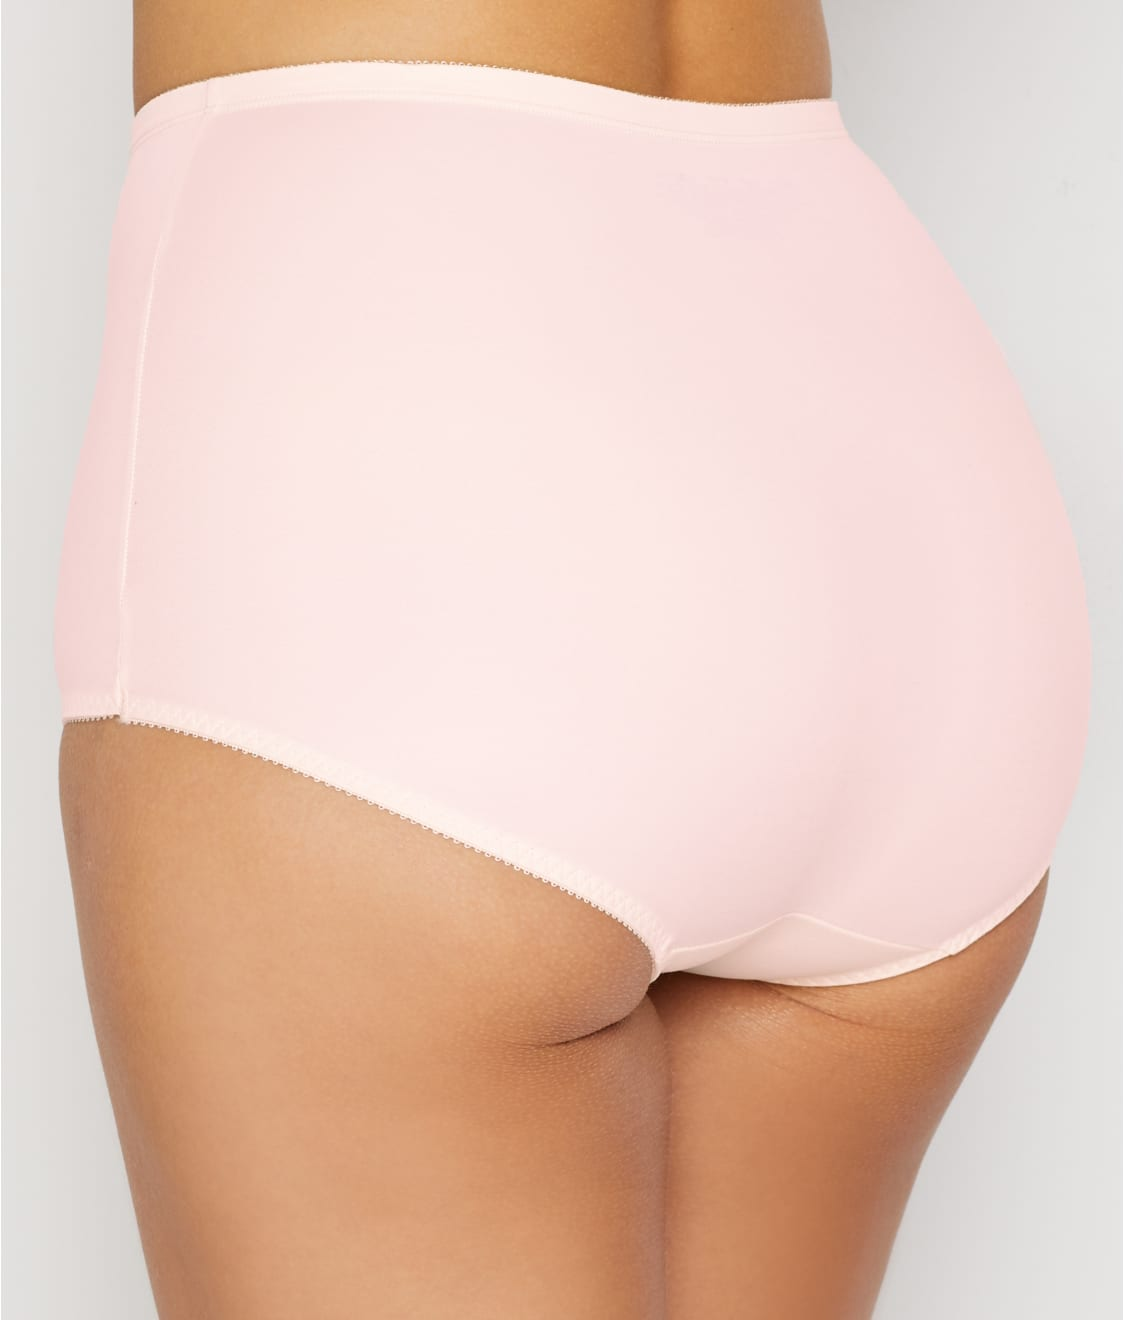 067e864896 See Tummy Panel Firm Control Brief 2-Pack in Porcelain   Blush